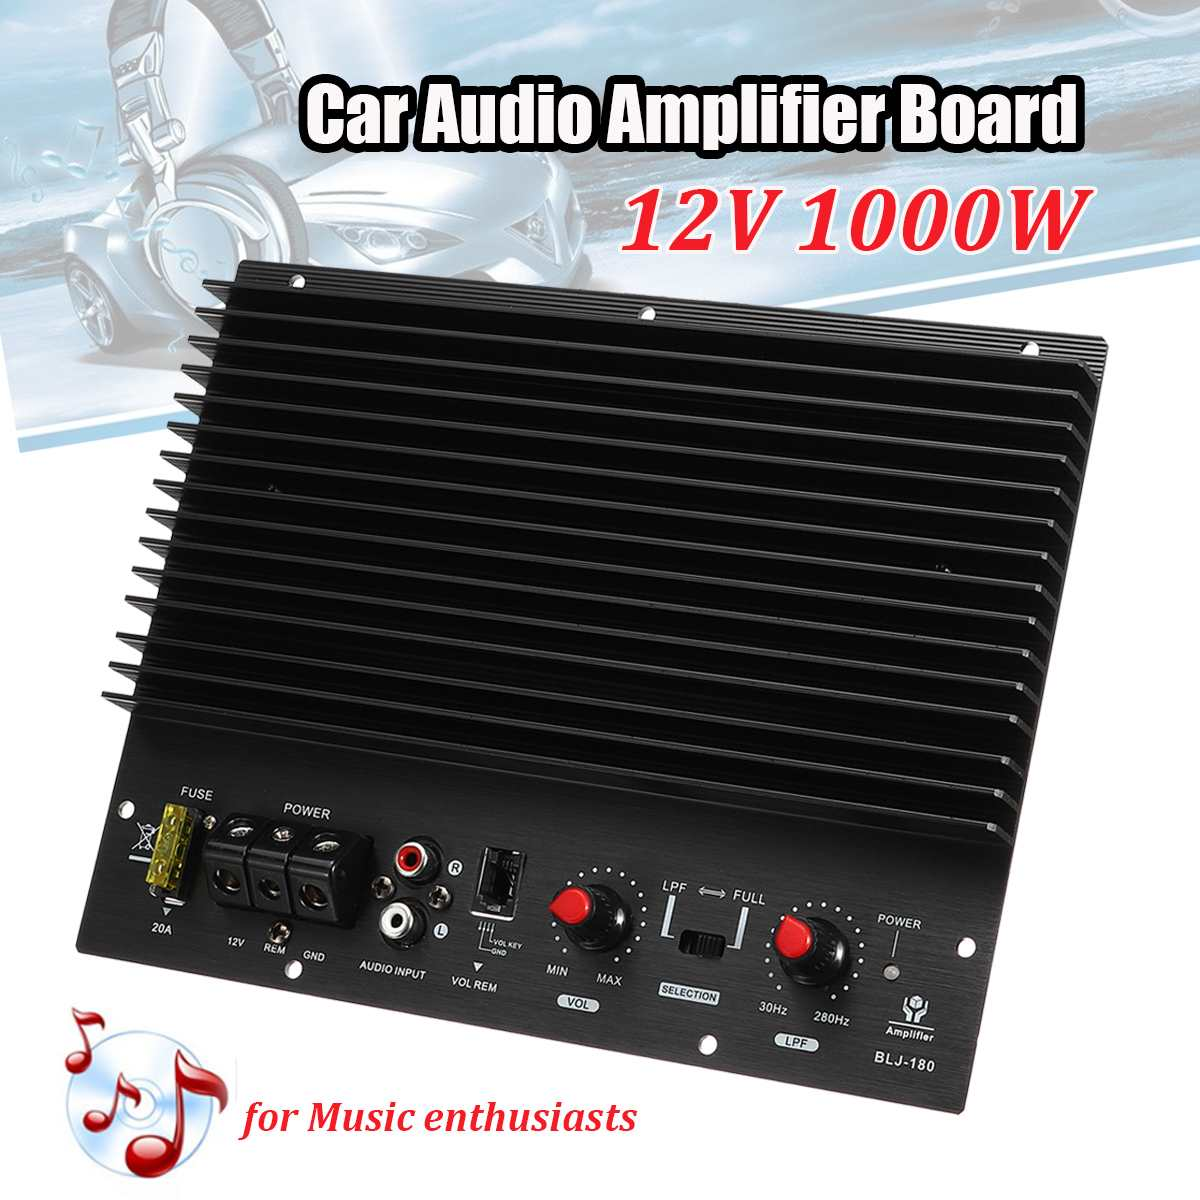 12V 1000W Car Amplifier Board Multichannel Audio Amplifier Subwoofer Powerful Bass DIY Amp Board Auto Car Music Player